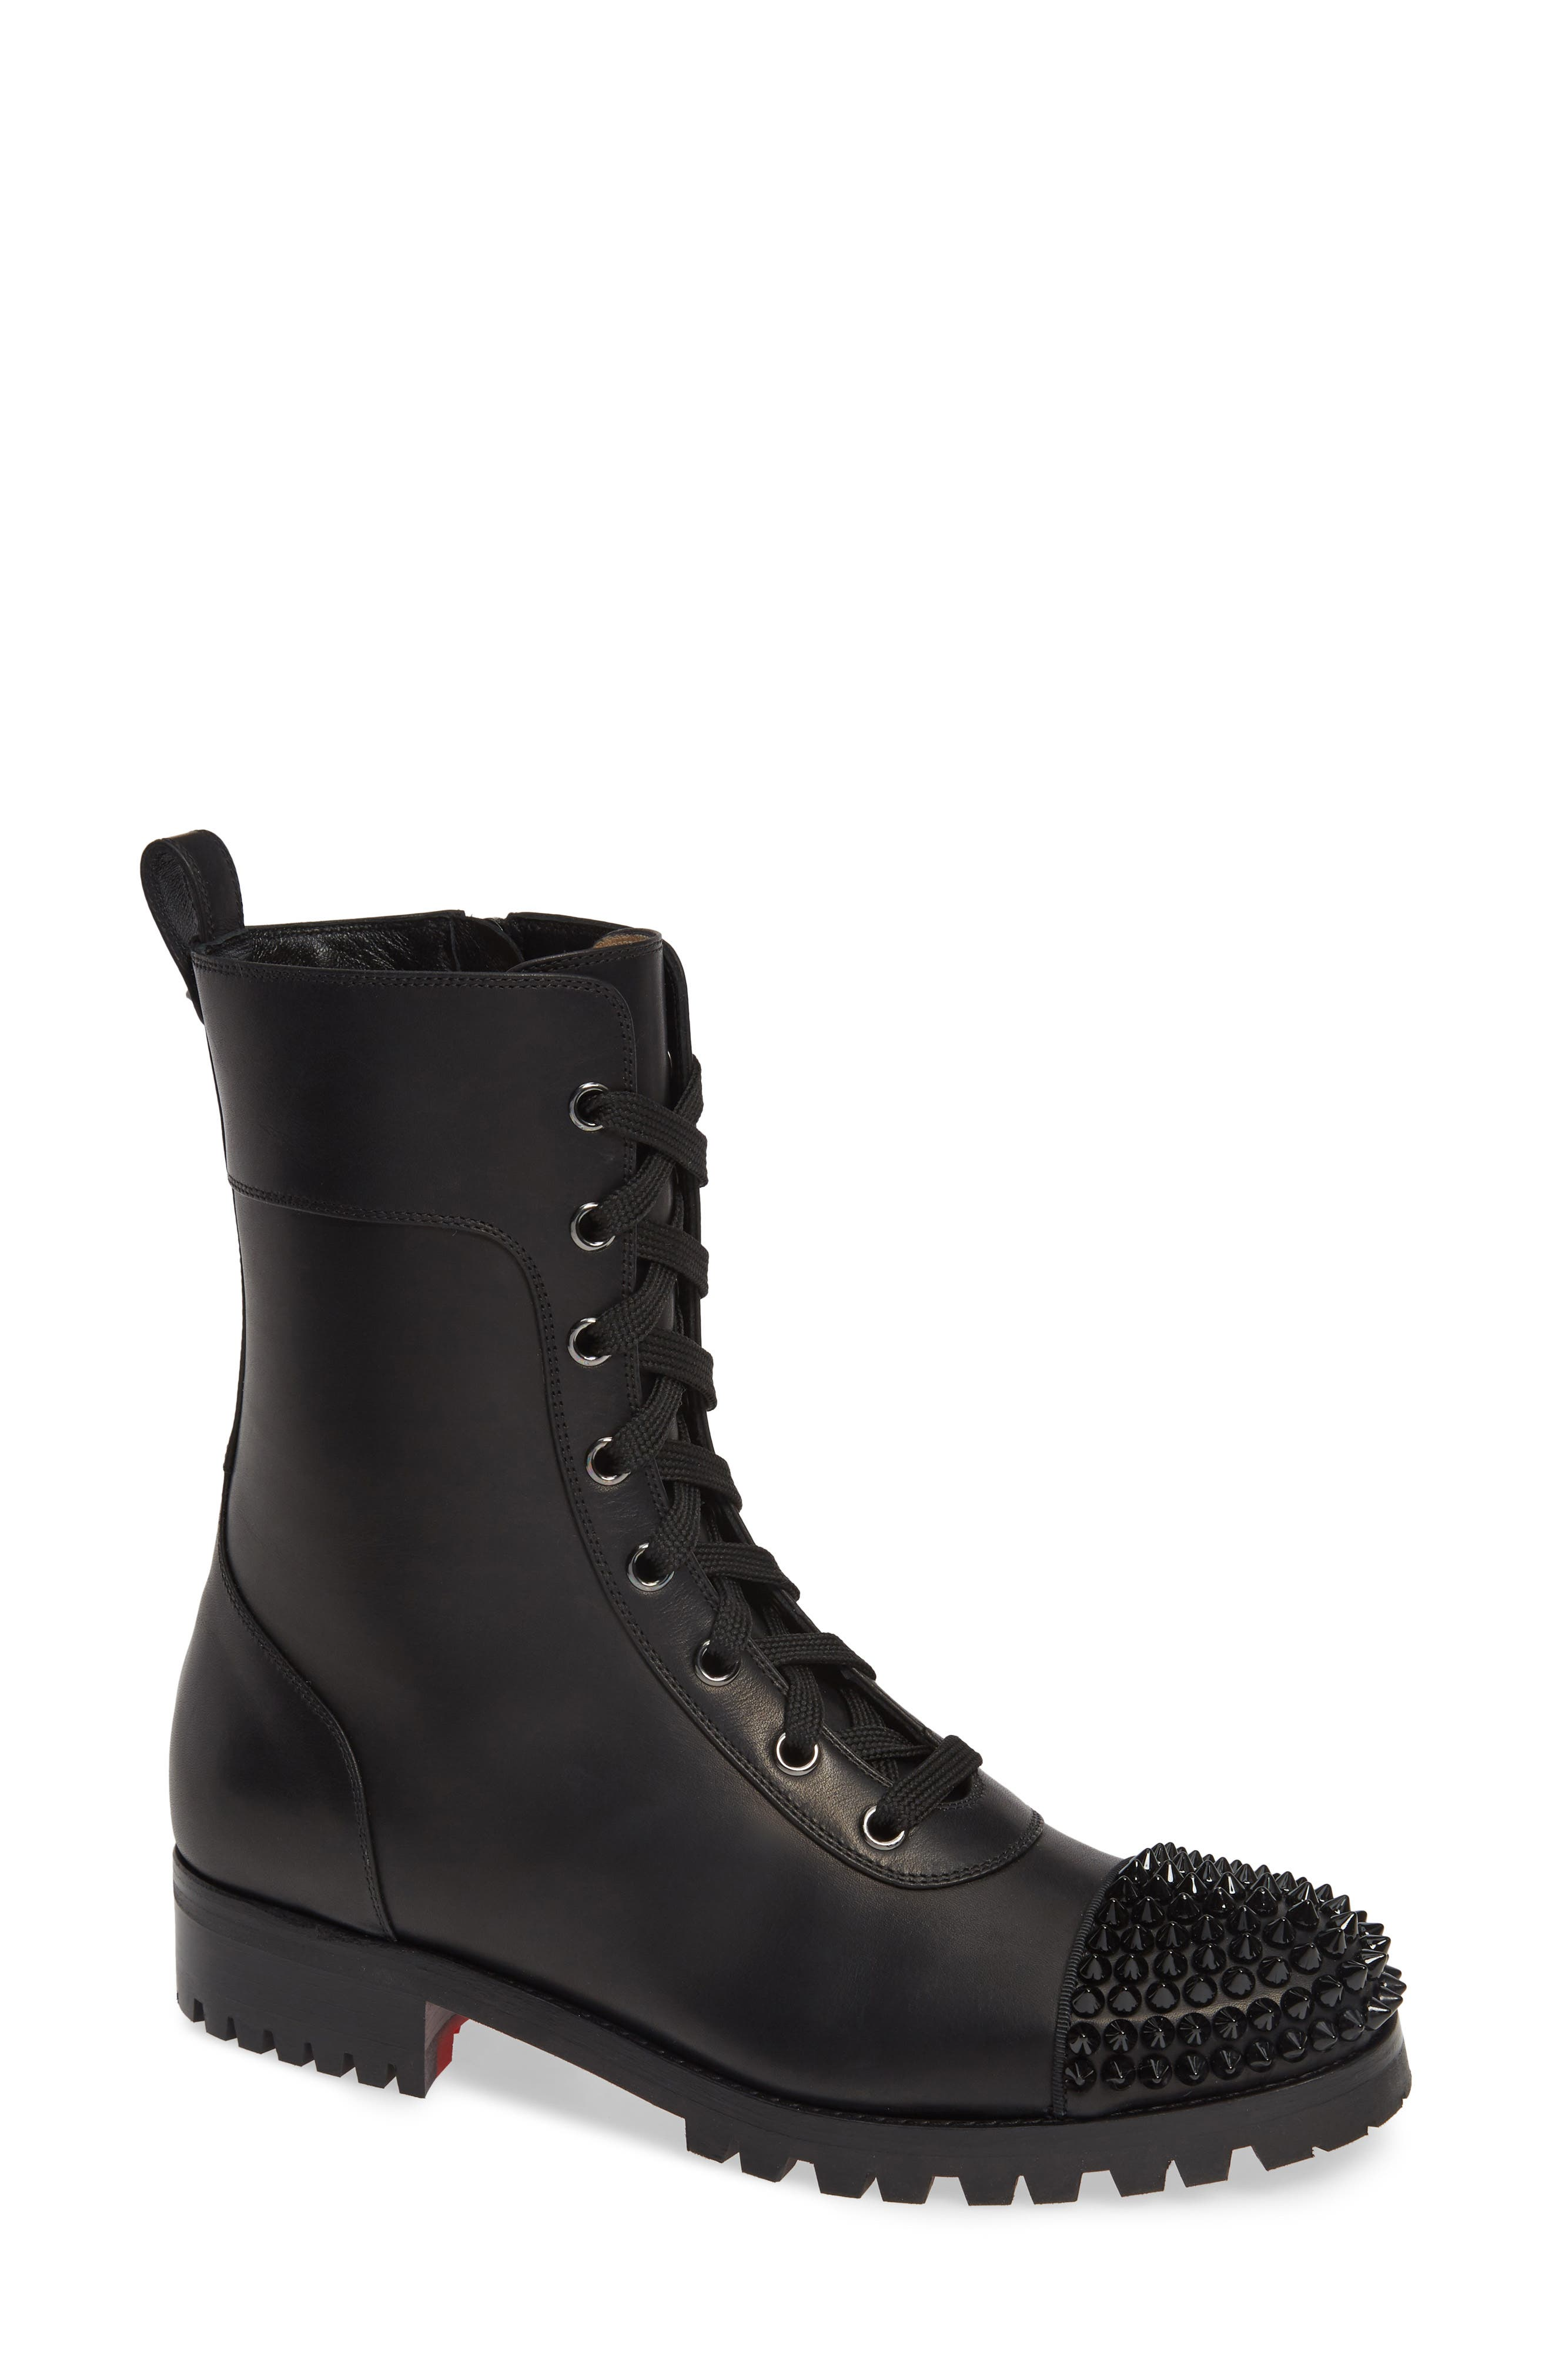 CHRISTIAN LOUBOUTIN Lace-Up Hiker Boot, Main, color, BLACK